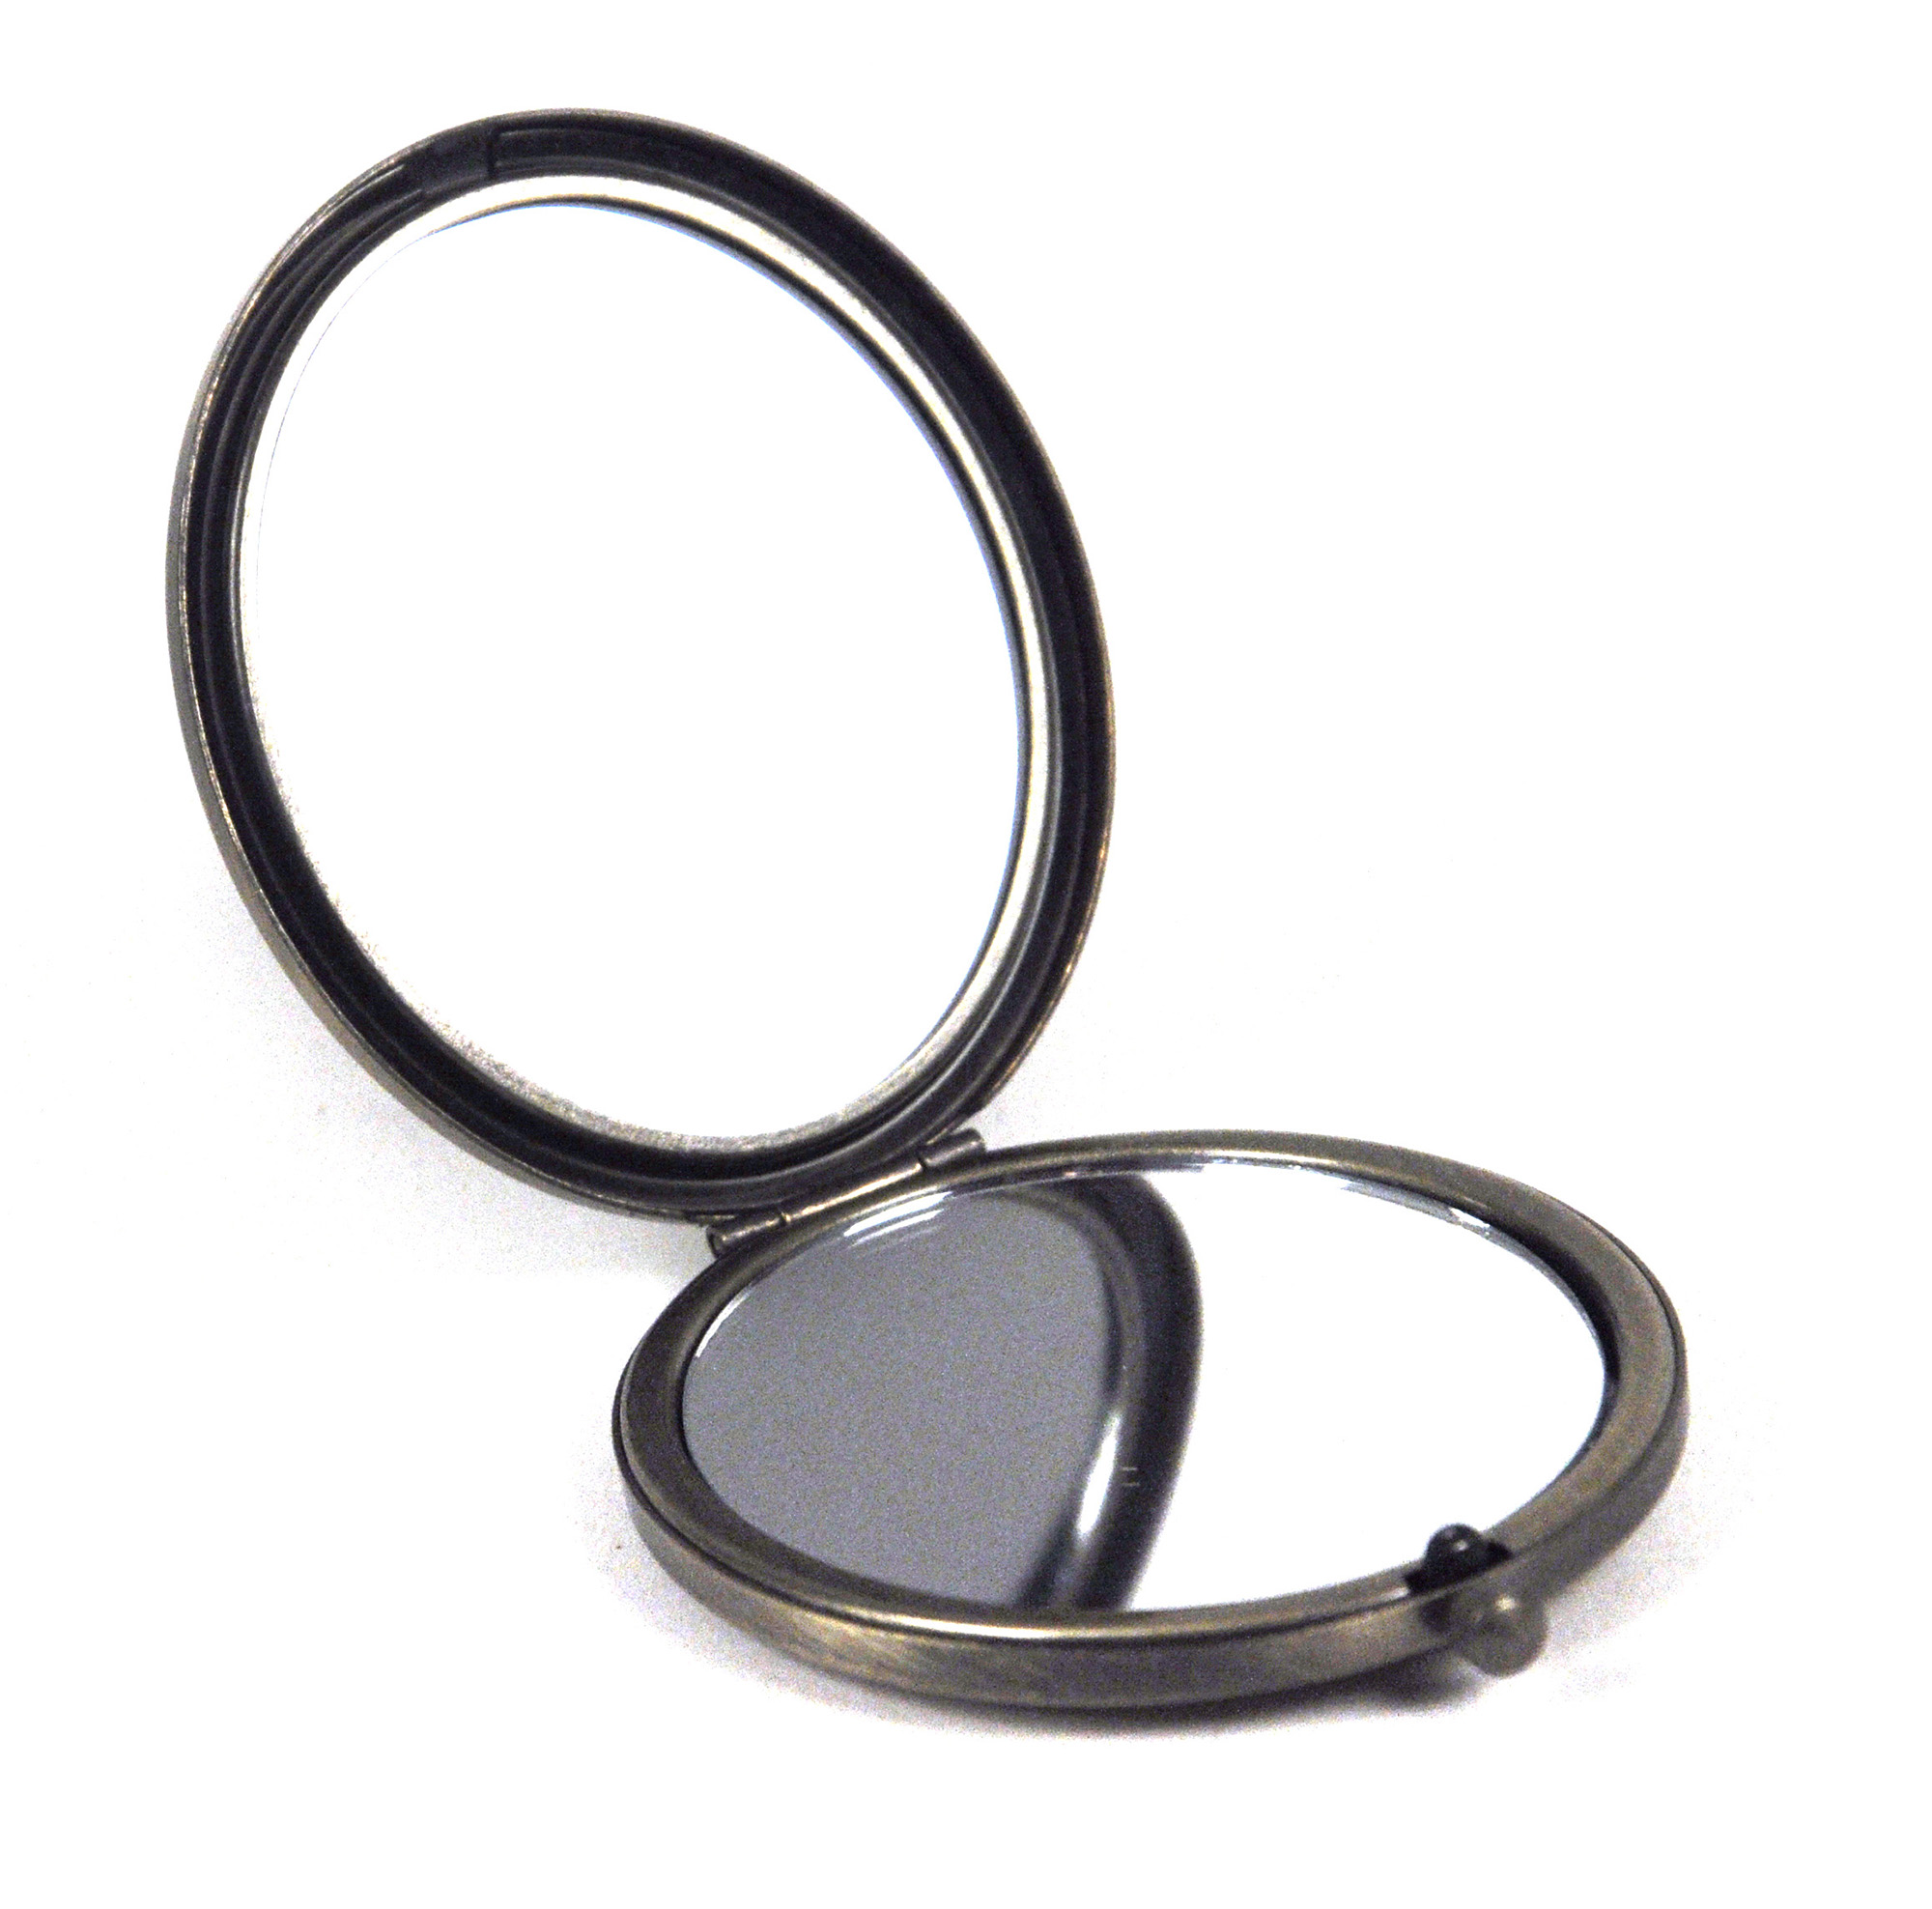 Willow Oval Compact Mirror The Mechanic Of My Heart